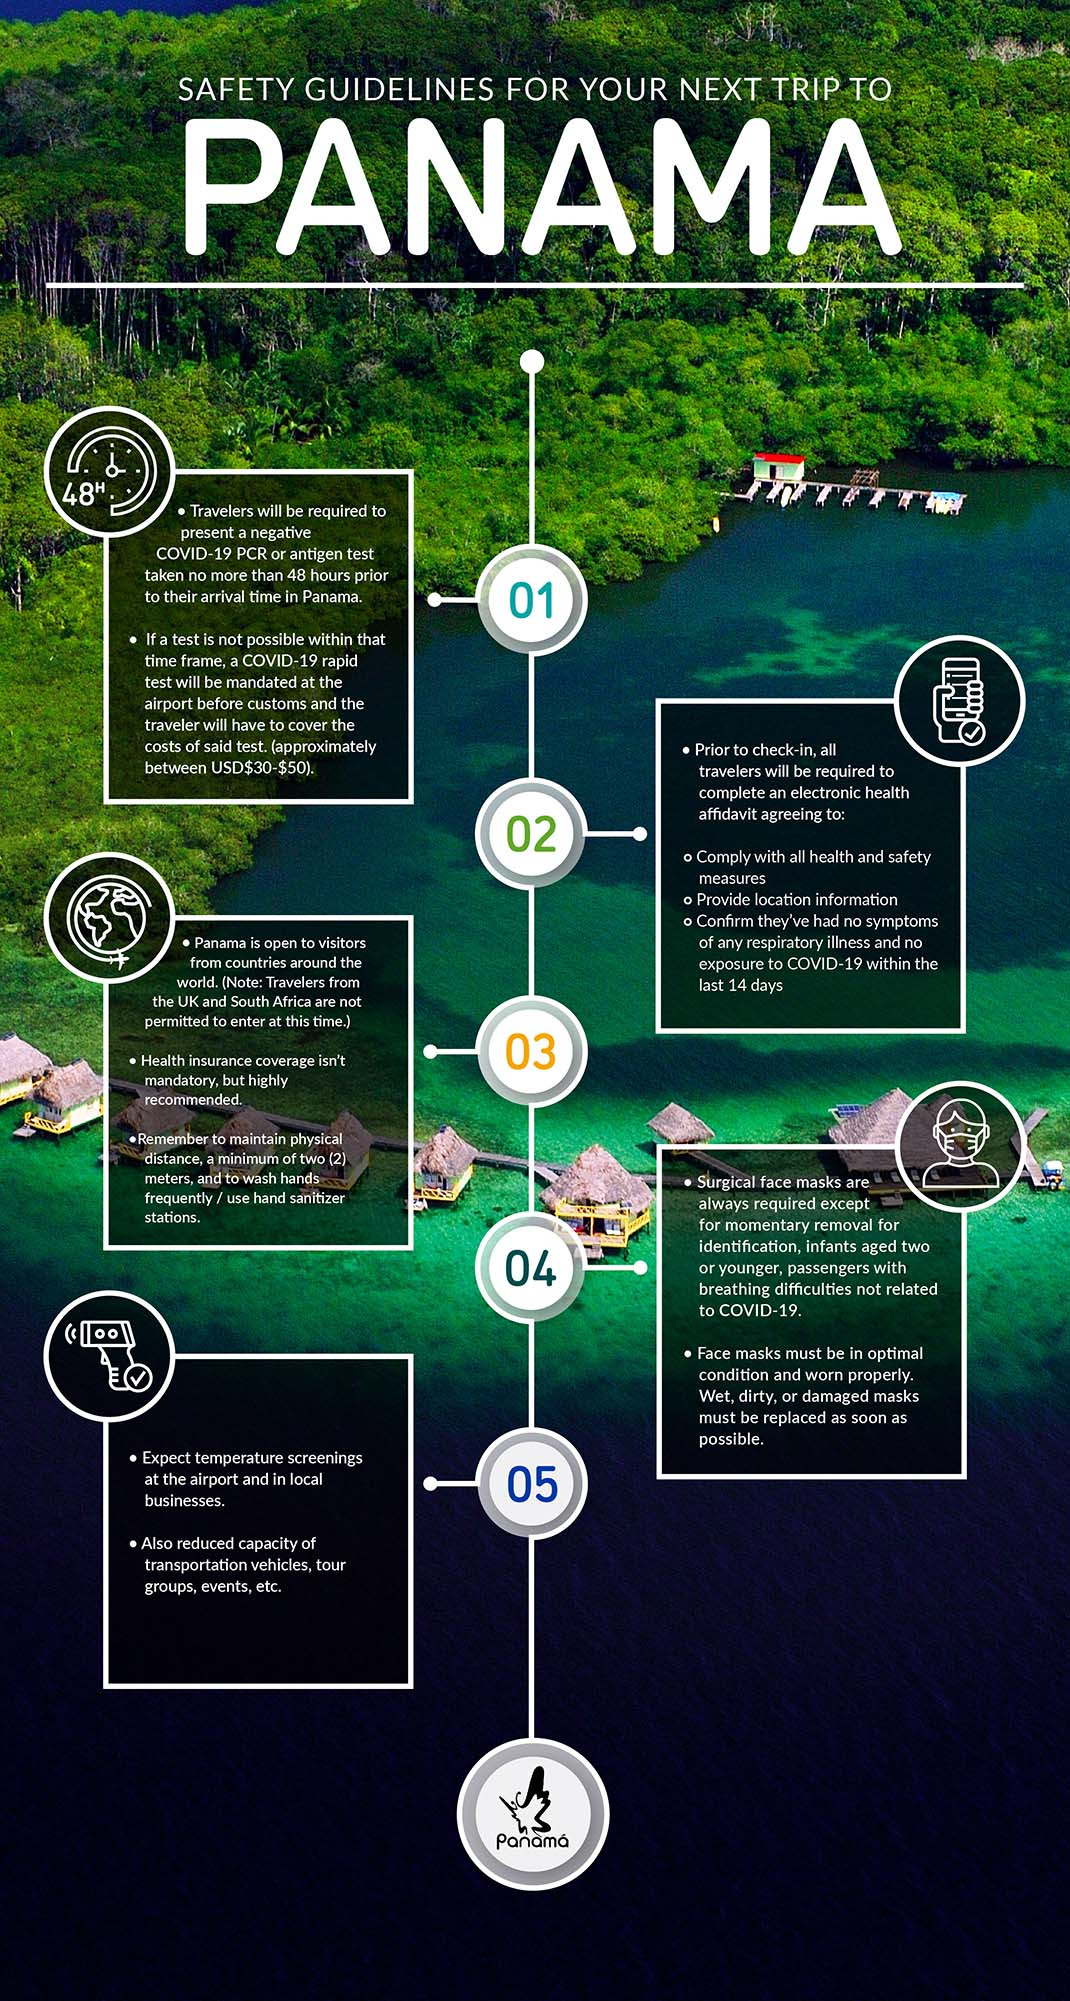 Safety Guidelines for your next trip to Panama